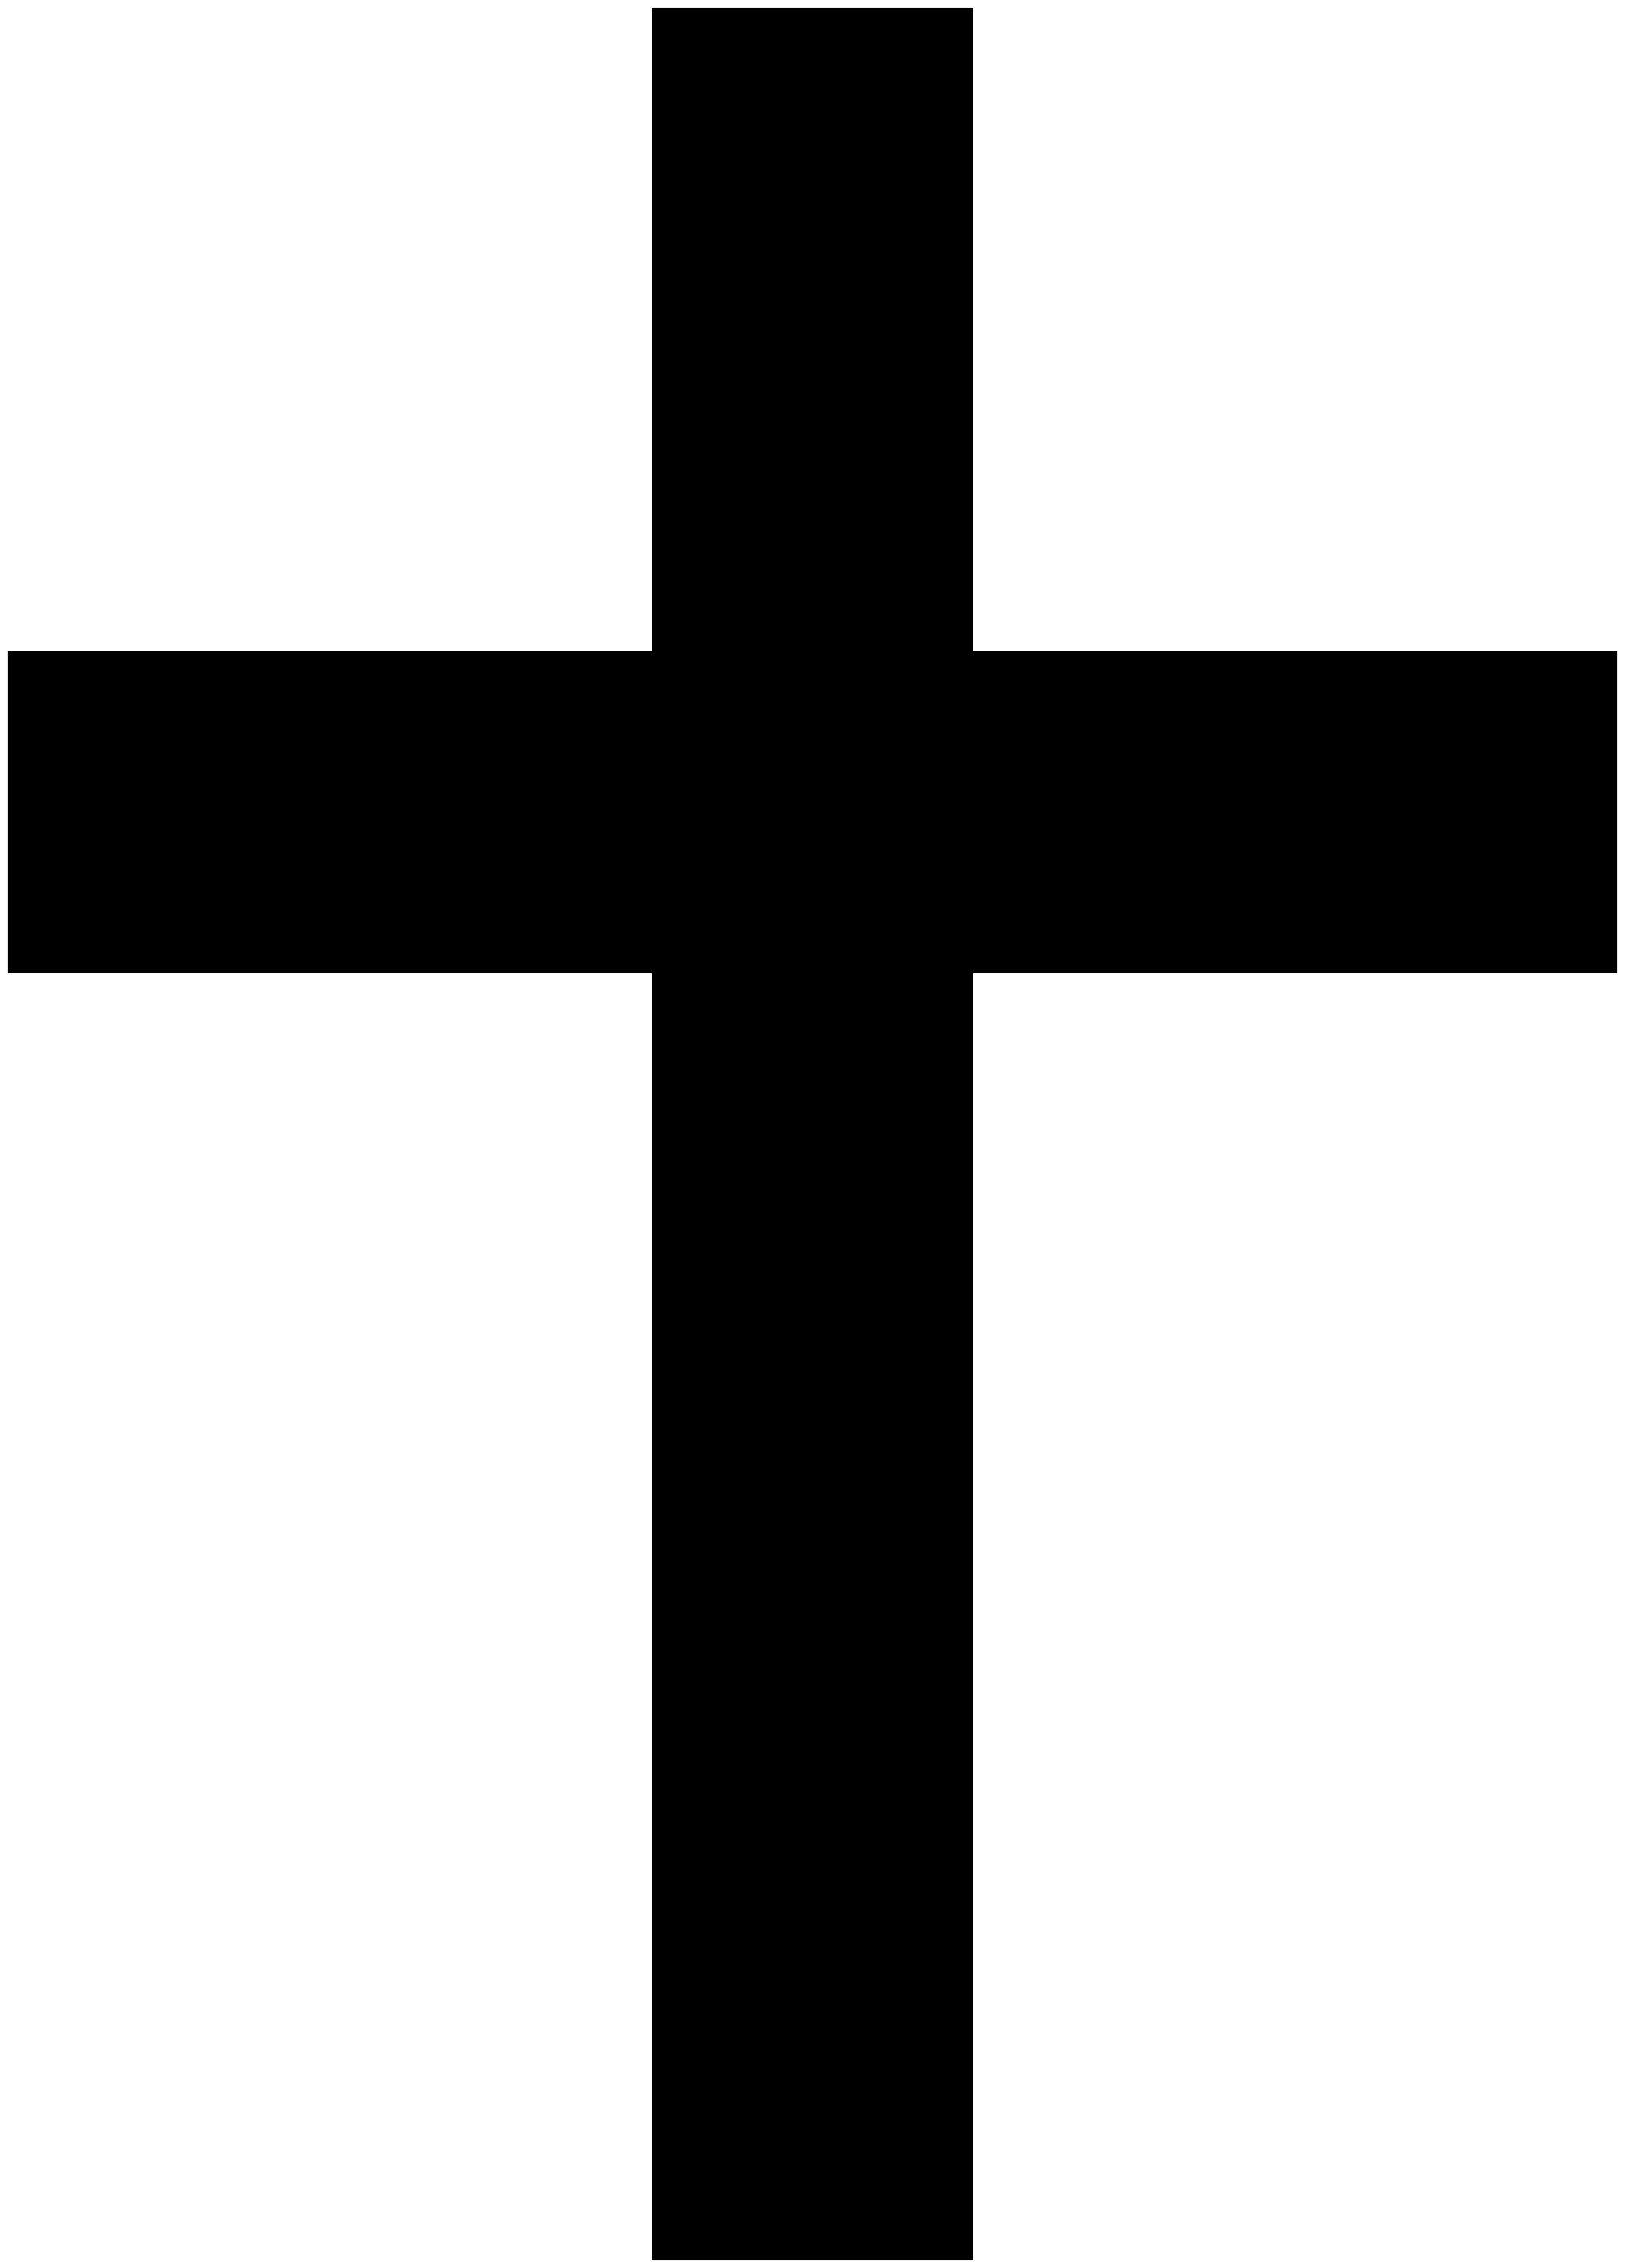 Simple christian transparent png. Cross clipart clip art free library